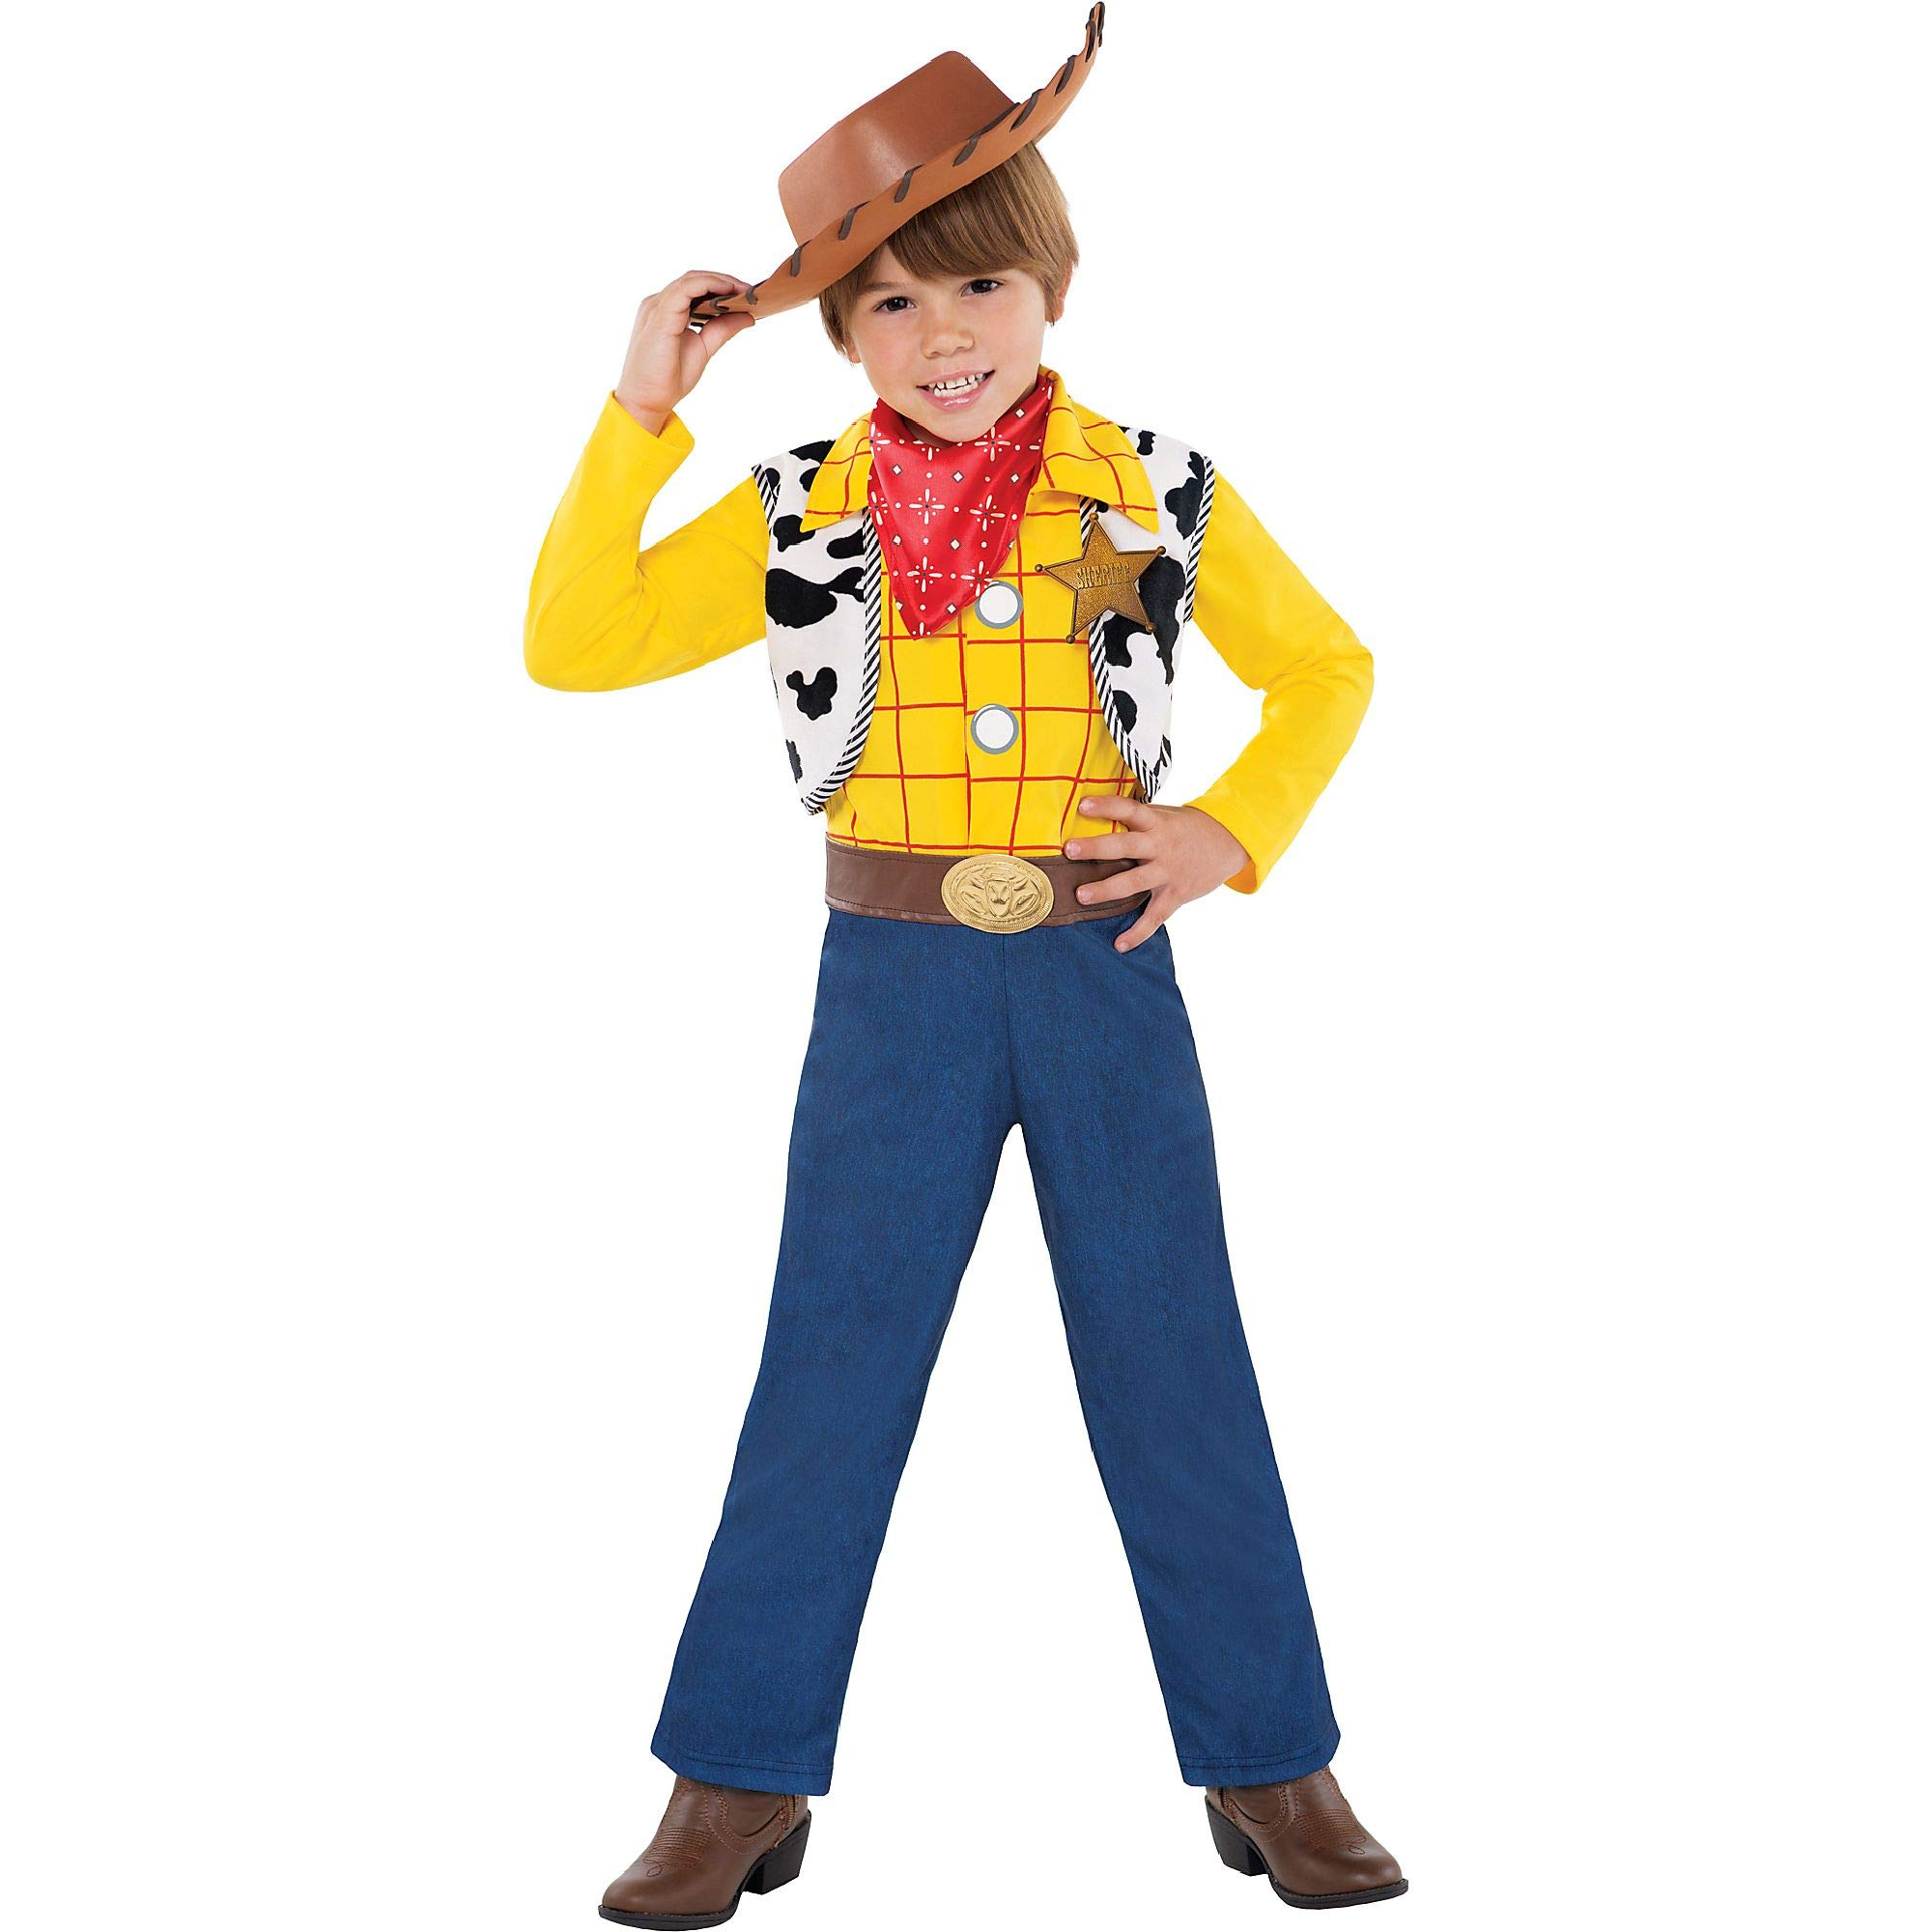 Amscan Toy Story Woody Halloween Costume for Boys, Small, with Included Accessories